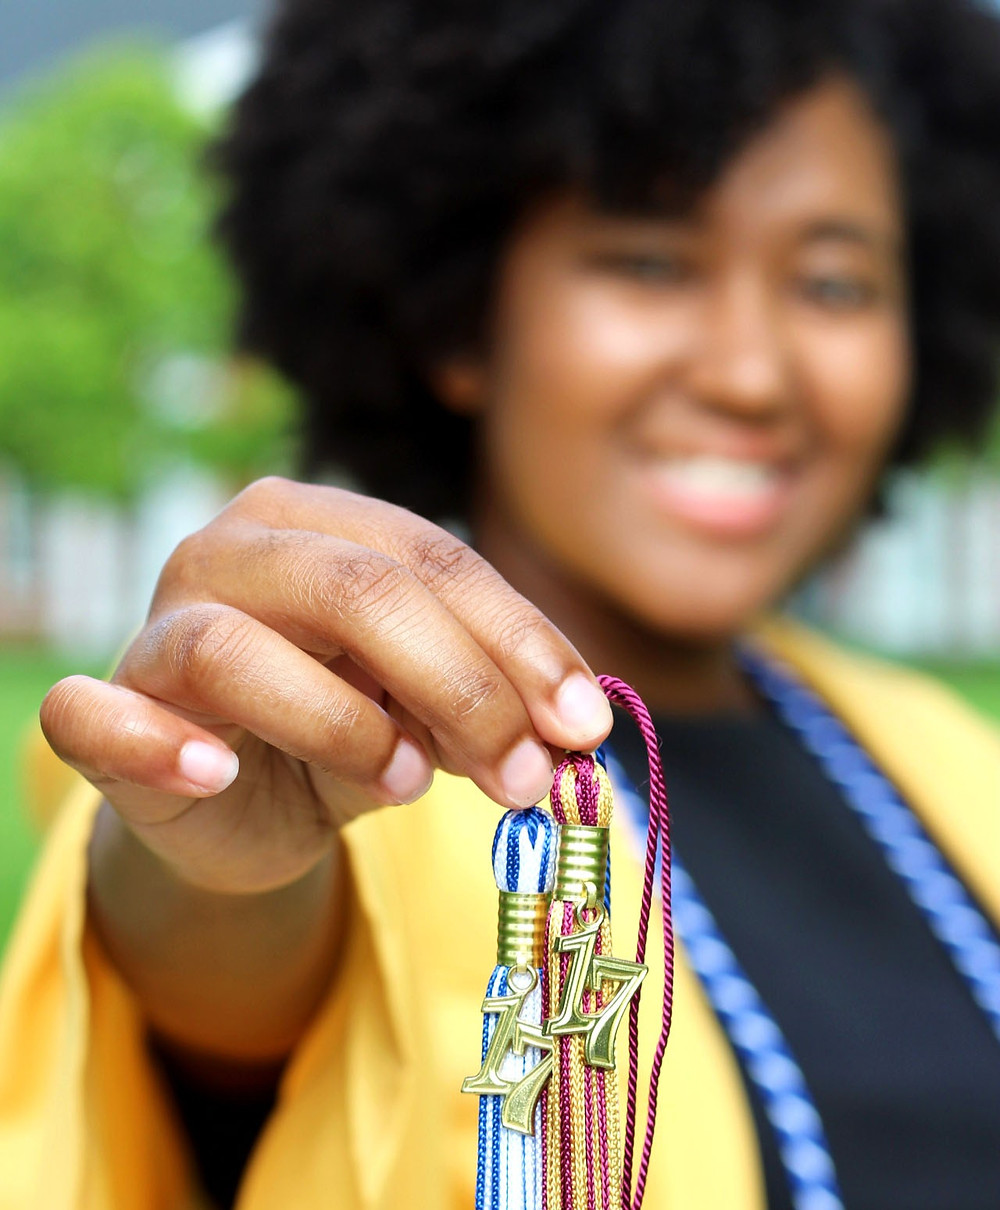 Amara Leggett (A Young Legend) is holding two of her graduation cap tassles with the year 2017 on it to signify that she graduated high school and college simultaneously.